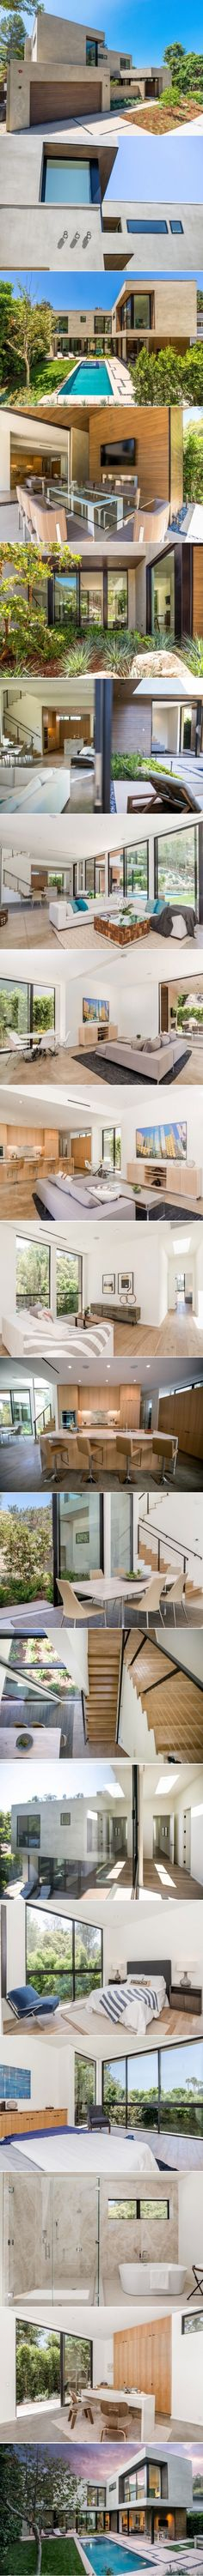 A Light-Filled Home Goes For Sale in Los Angeles, California | HomeDSGN